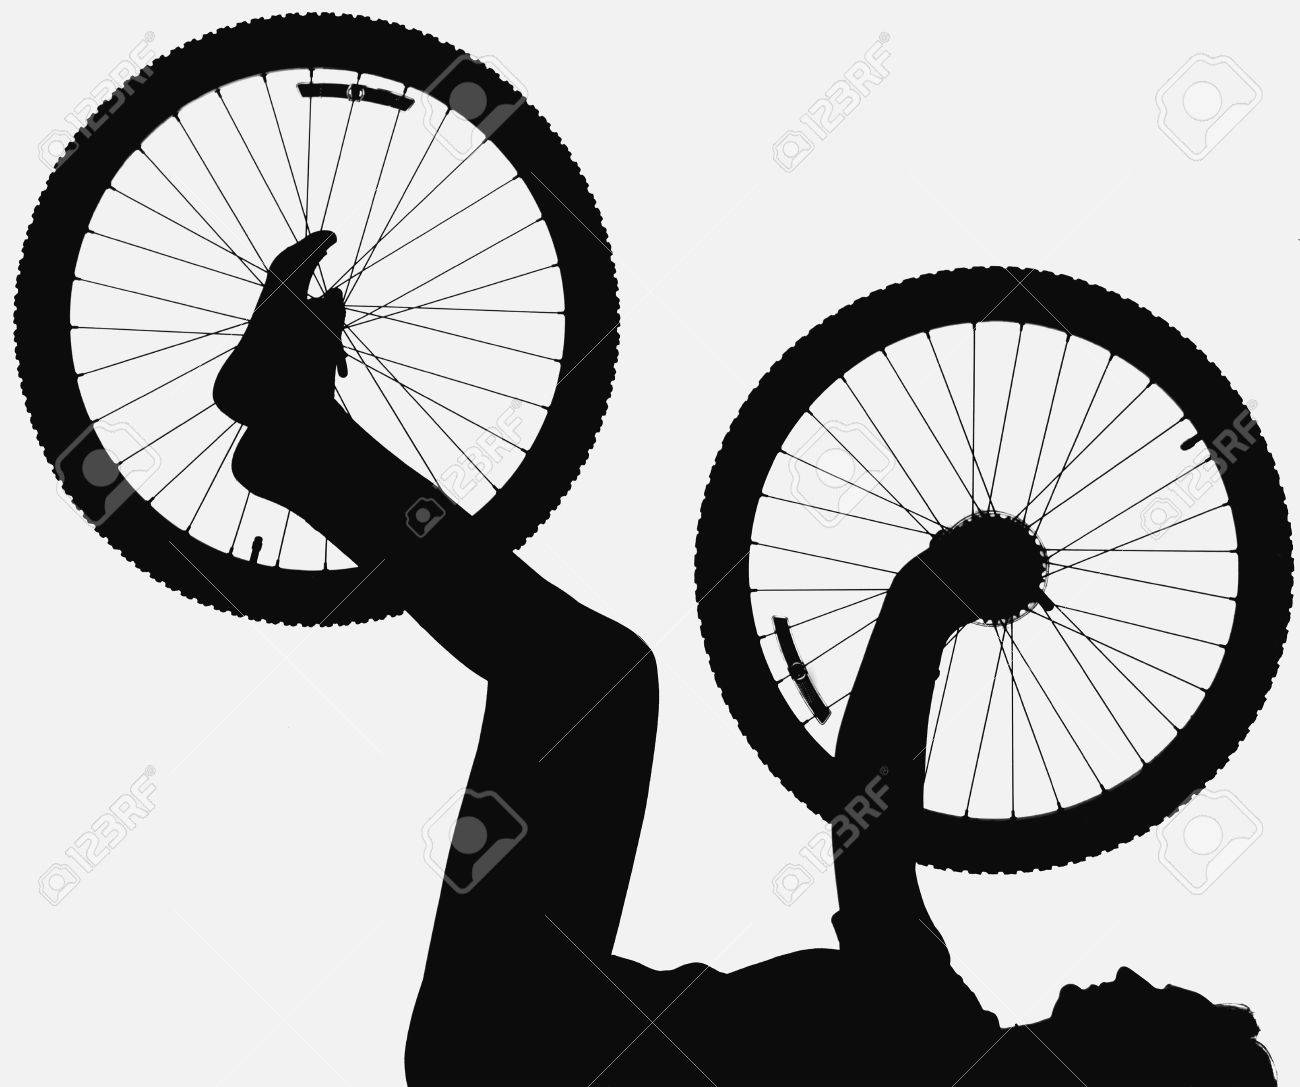 Silhouette of person holding bicycle wheel Stock Photo - 8241151